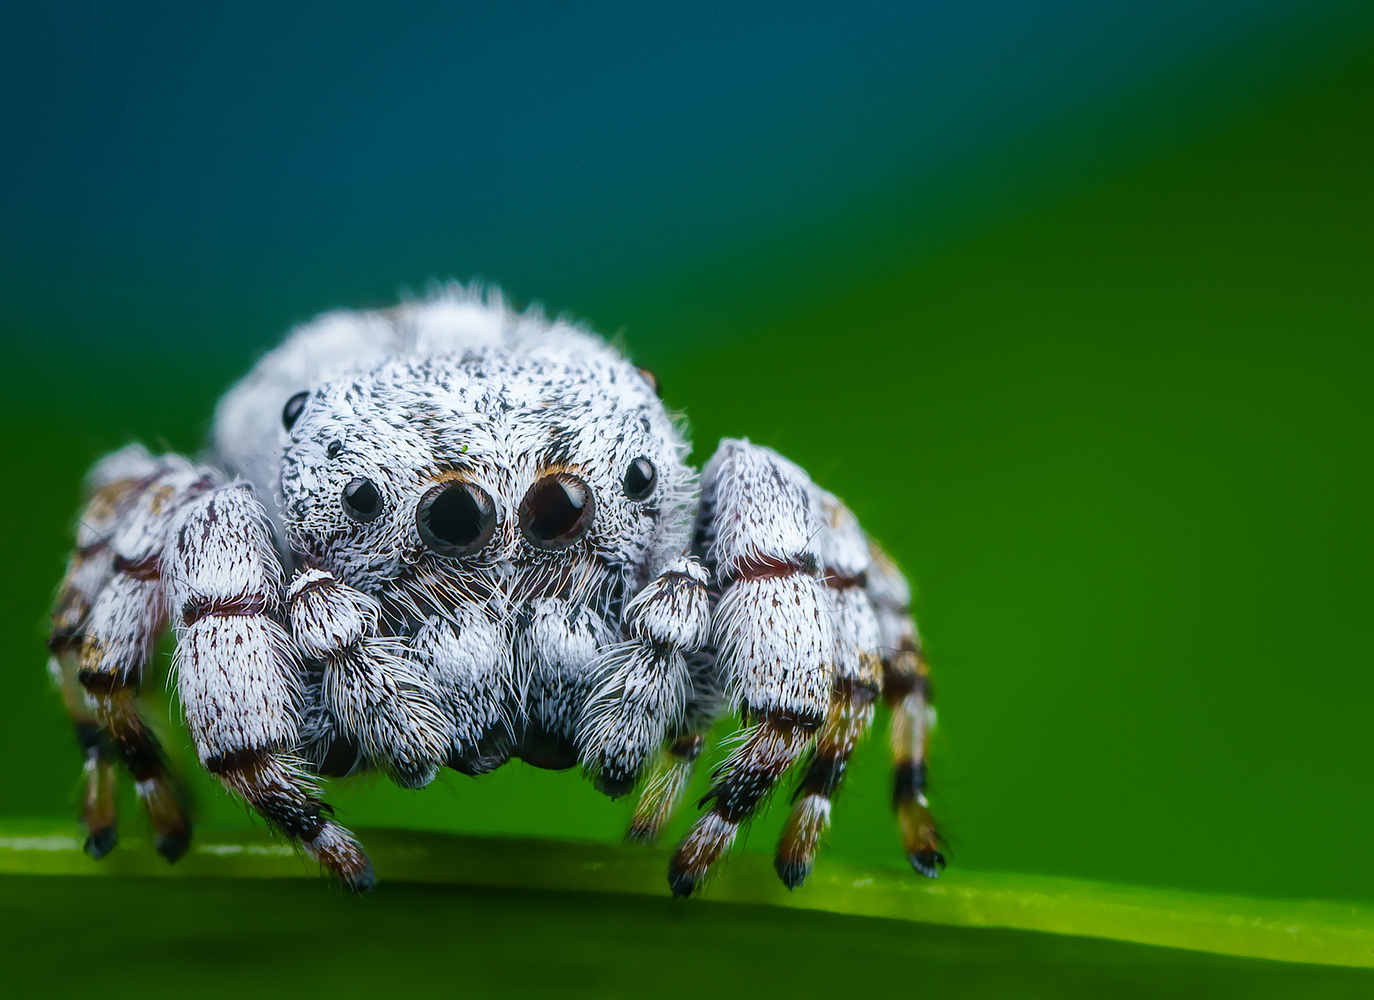 The Cutest Spider Ever! by Liza Rock